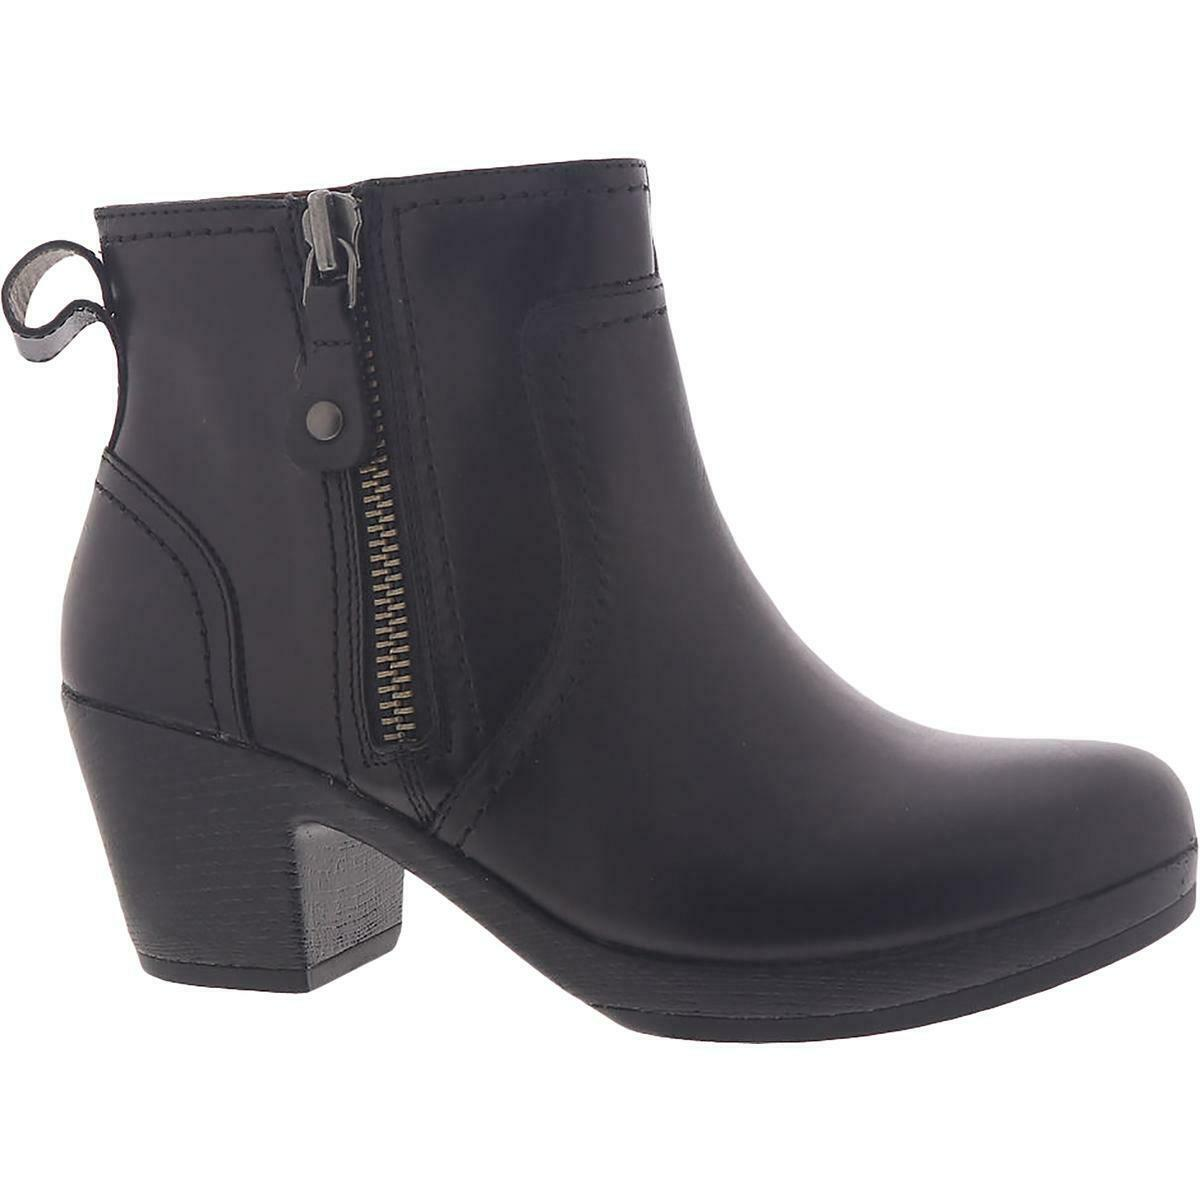 Cobb Hill Womens Presley Leather Stacked Heel Zipper Ankle Boots Shoes BHFO 8028